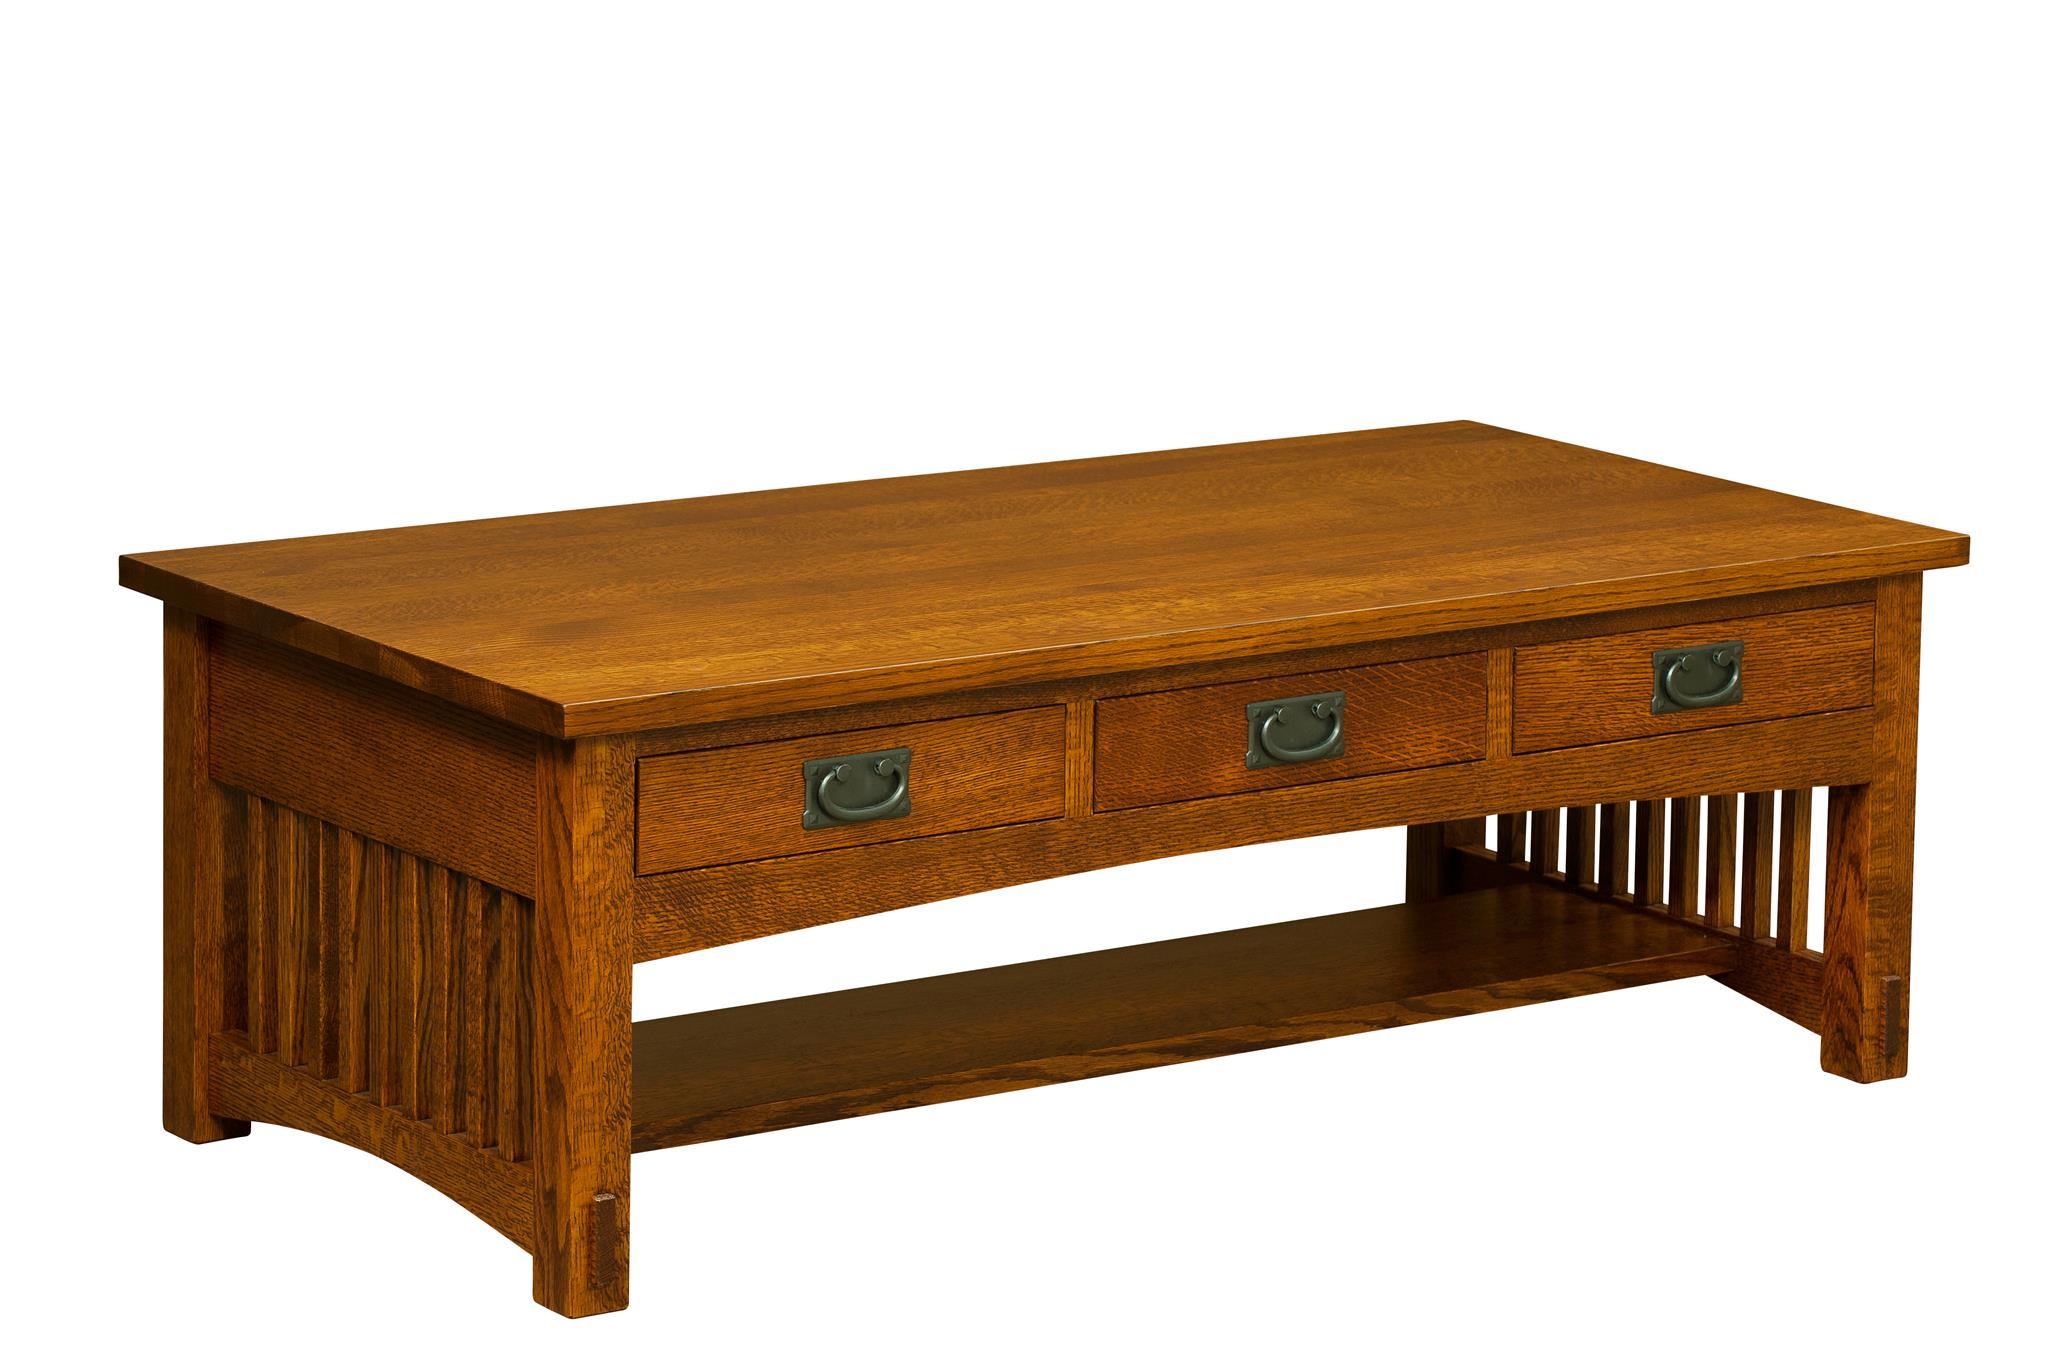 Amish Bungalow Coffee table Image